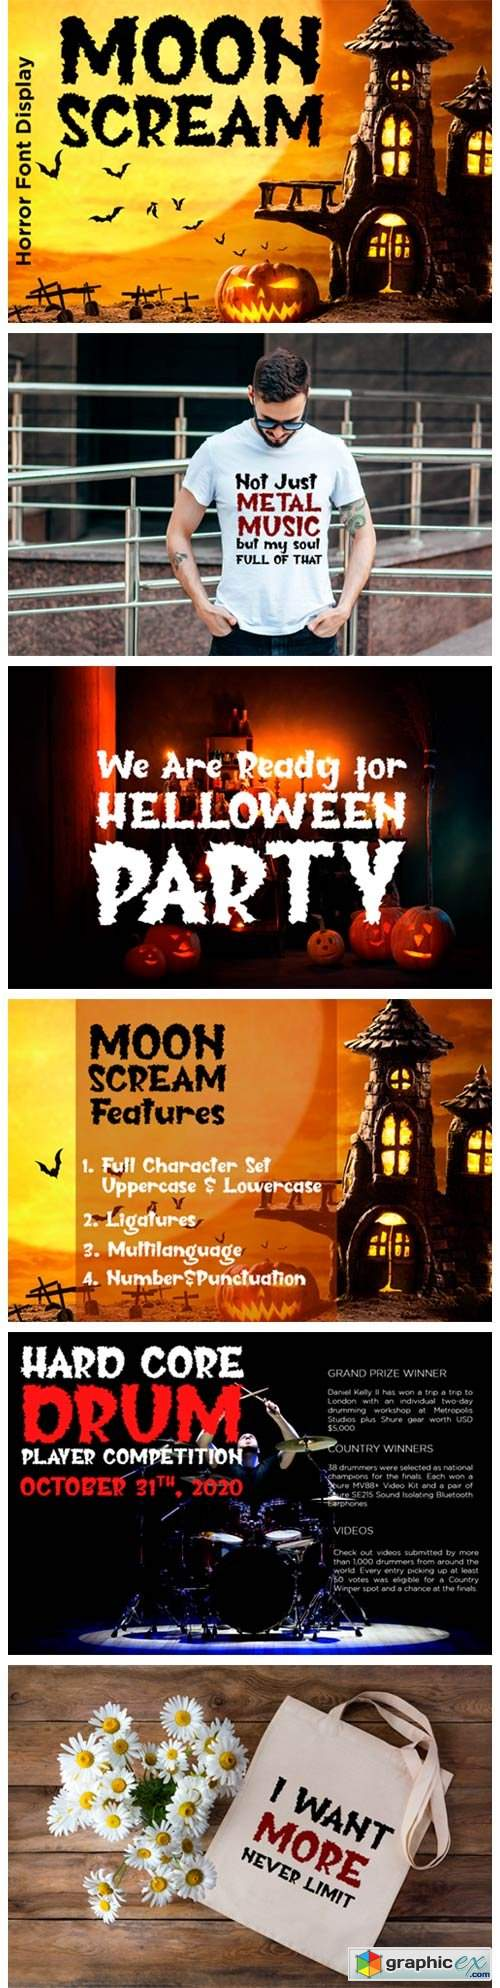 Moon Scream Font